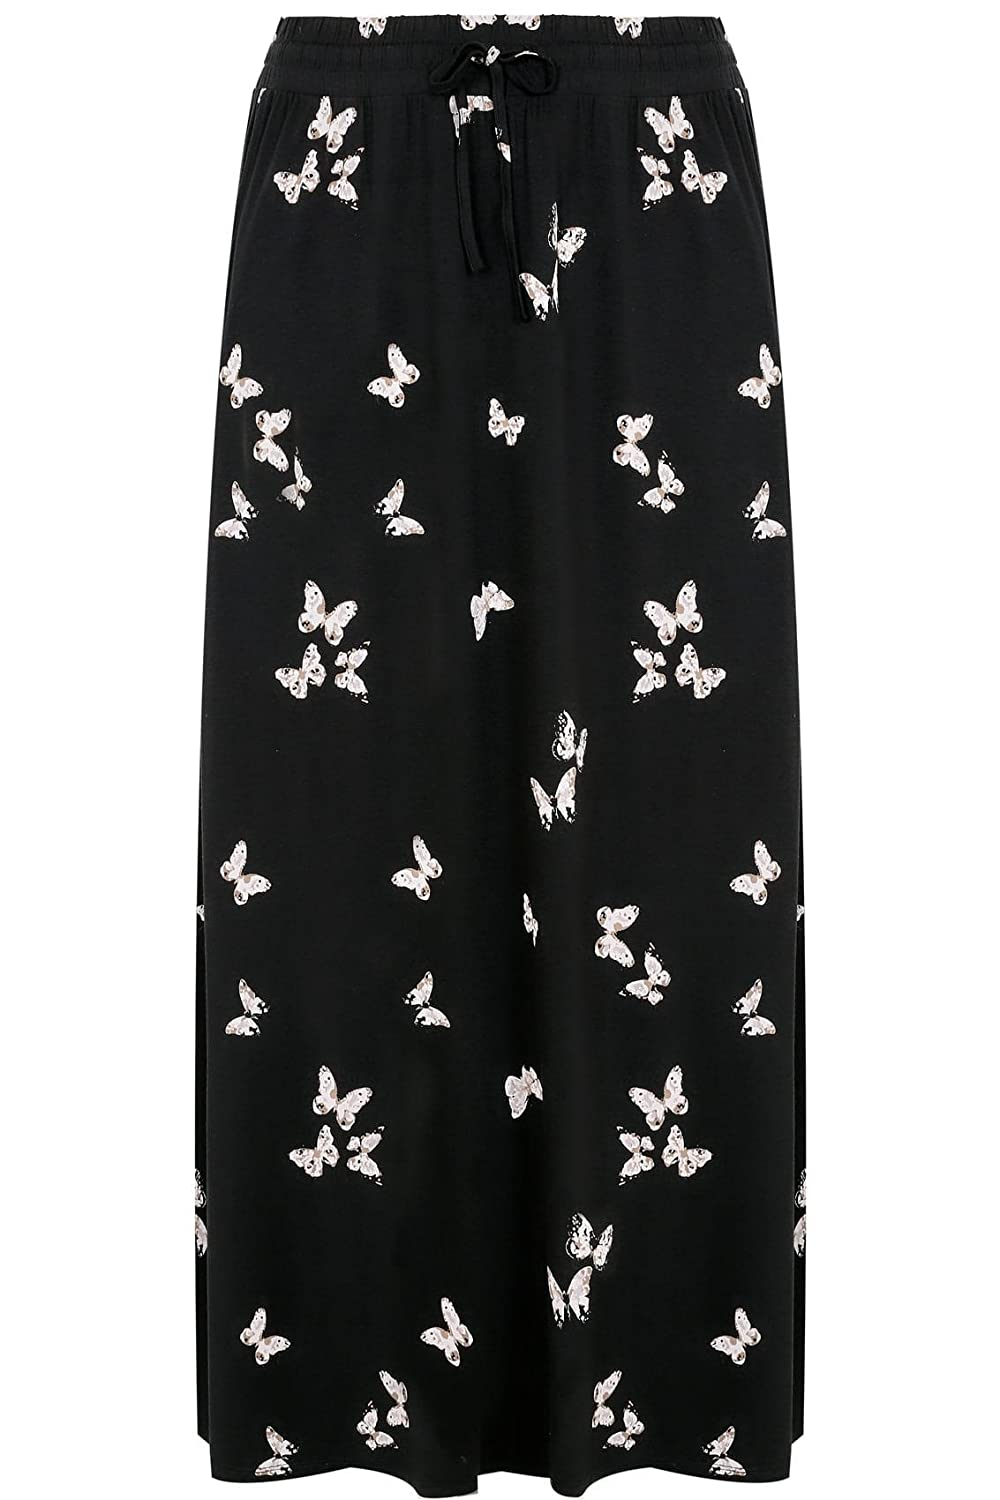 b66fa949479d9 Yours Women s Plus Size Butterfly Print Pull On Maxi Skirt with Side Splits  Size 16 Black  Amazon.co.uk  Clothing